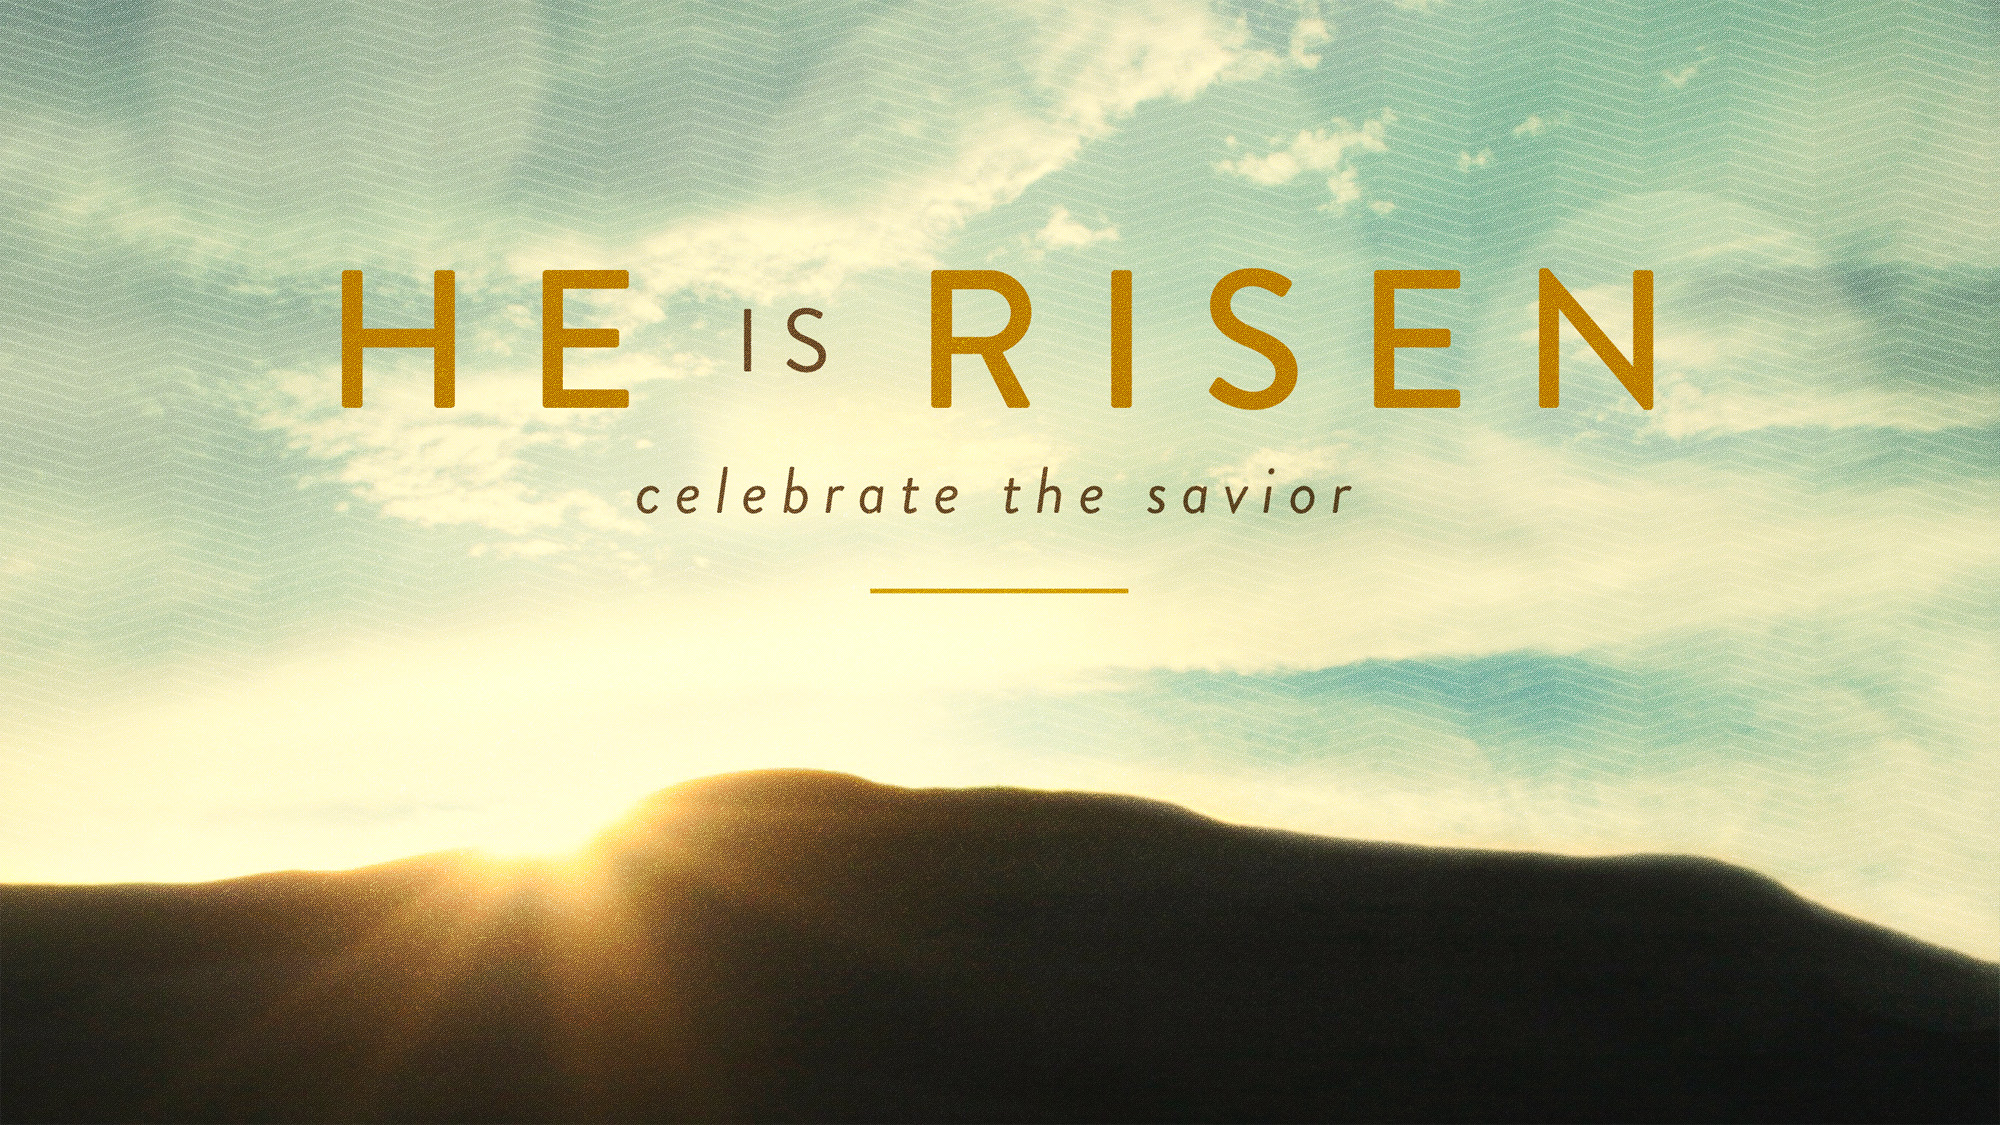 He Is Risen Facebook Cover Fact that he is risen!